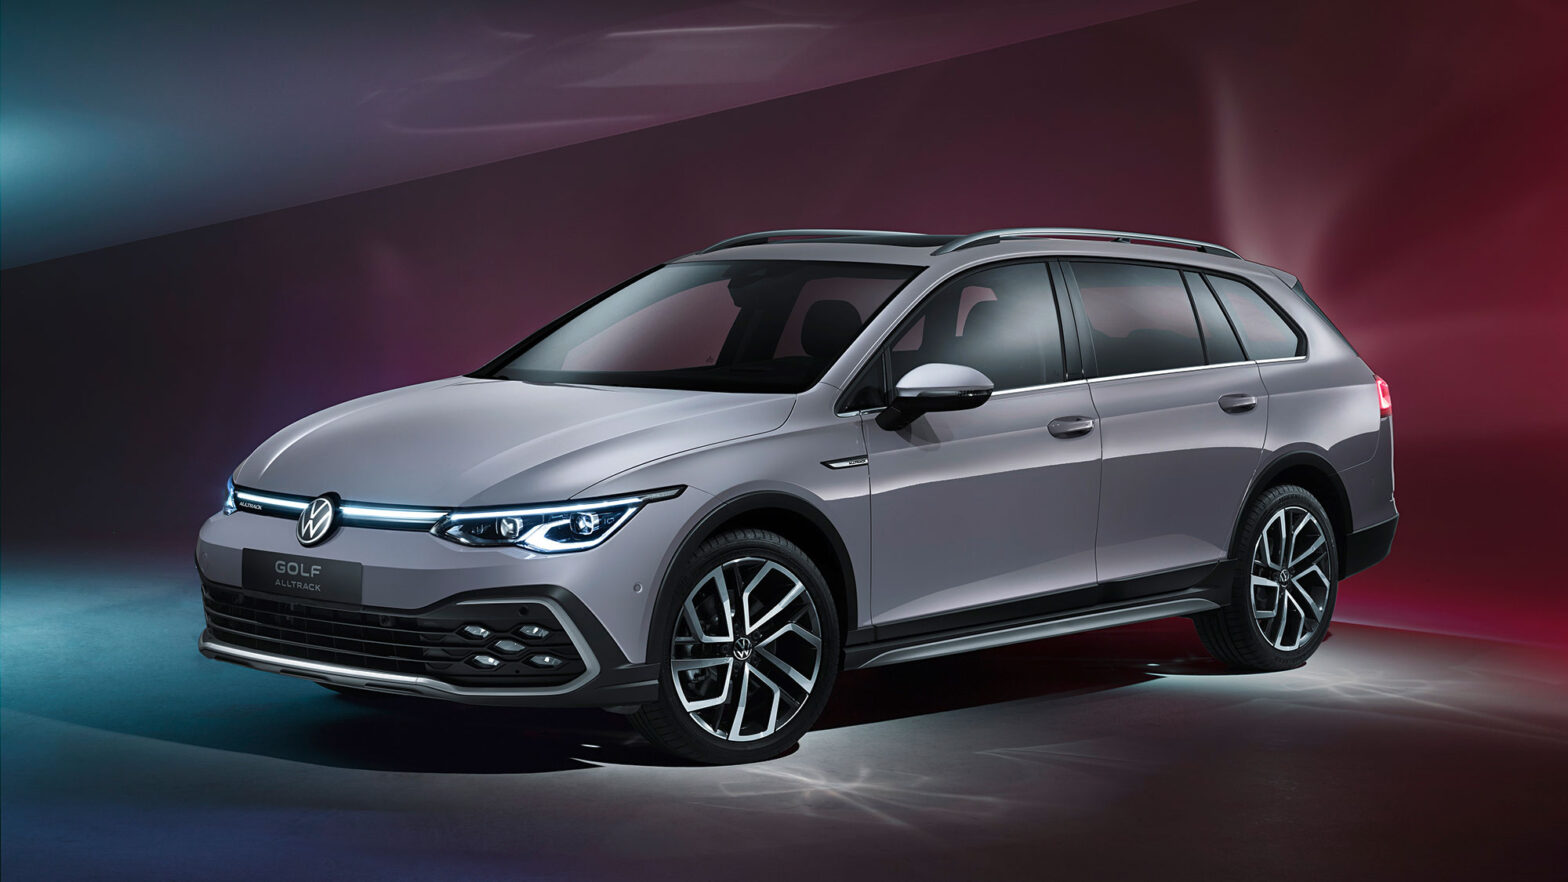 2021 Volkswagen Golf Variant and Golf Alltrack Station Wagon